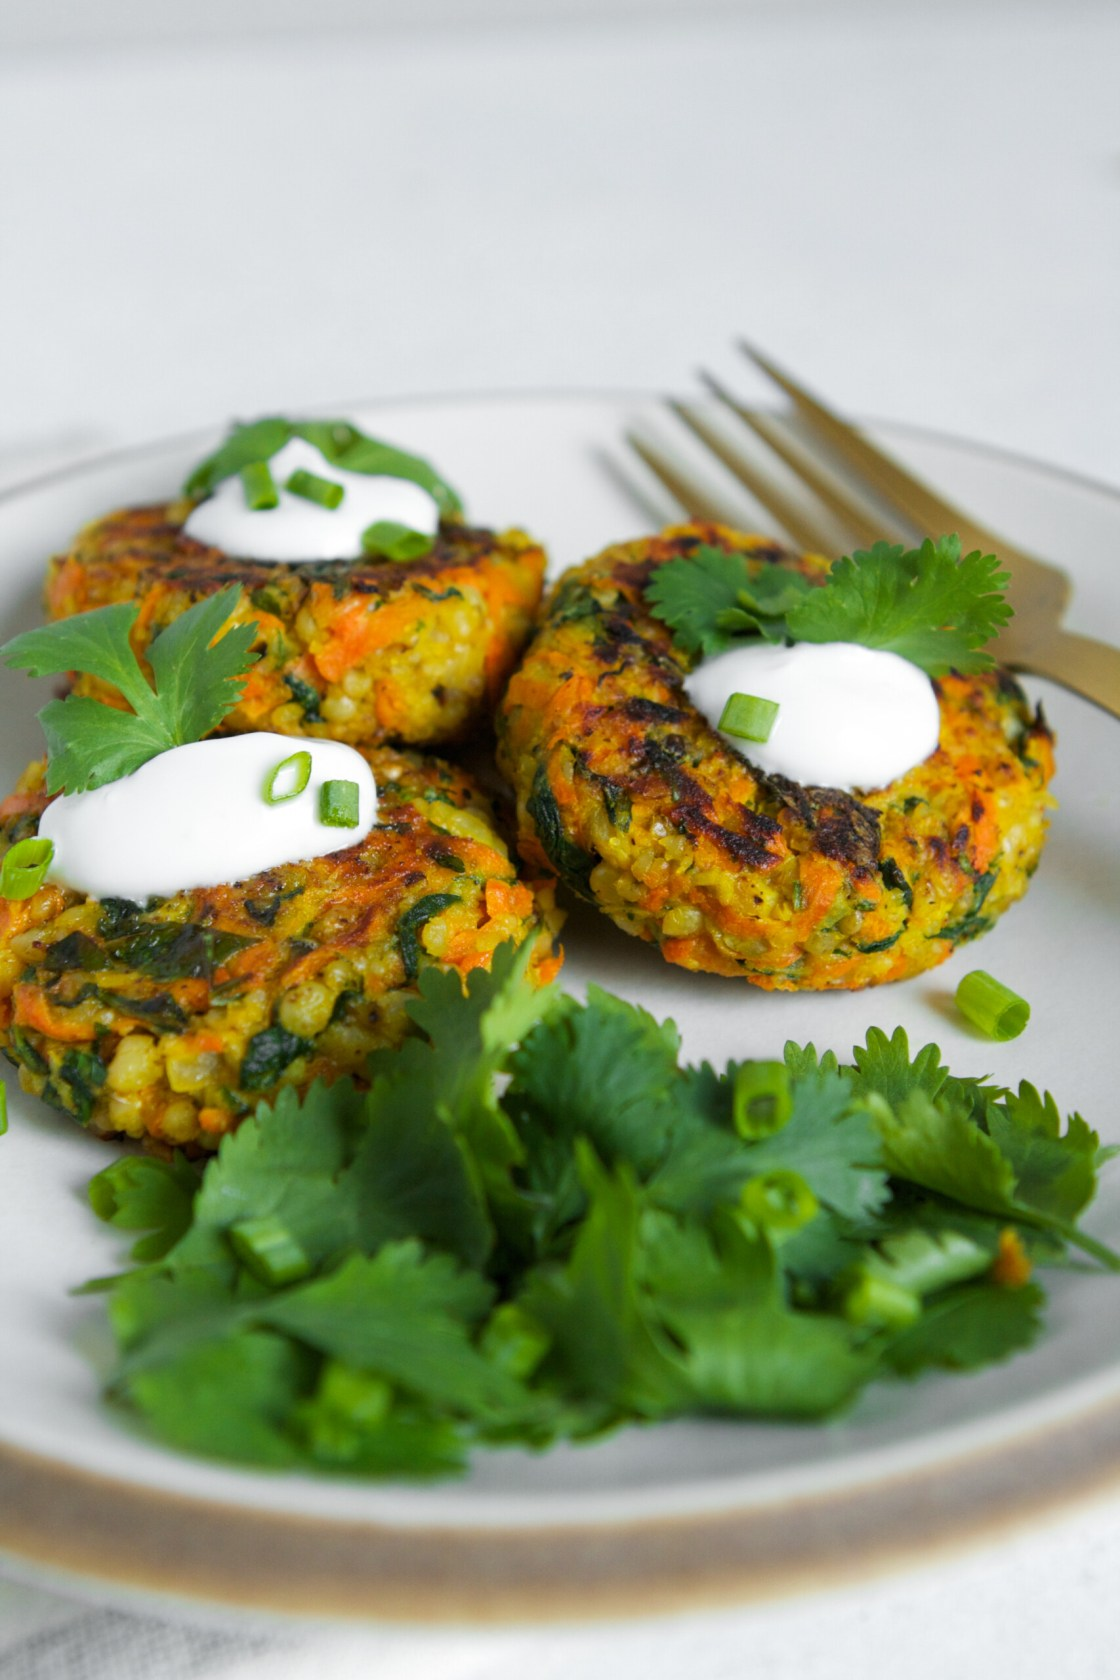 With a simple, yet impressive, ingredient list, these whole-grain sorghum cakes couldn't be any easier to make. And when you throw carrots, arugula, curry, and a hearty amount of garlic into the mix, they also don't lack any oomph. These Curried Sorghum Cakes are definitely weeknight-dinner fare.   Zestful Kitchen